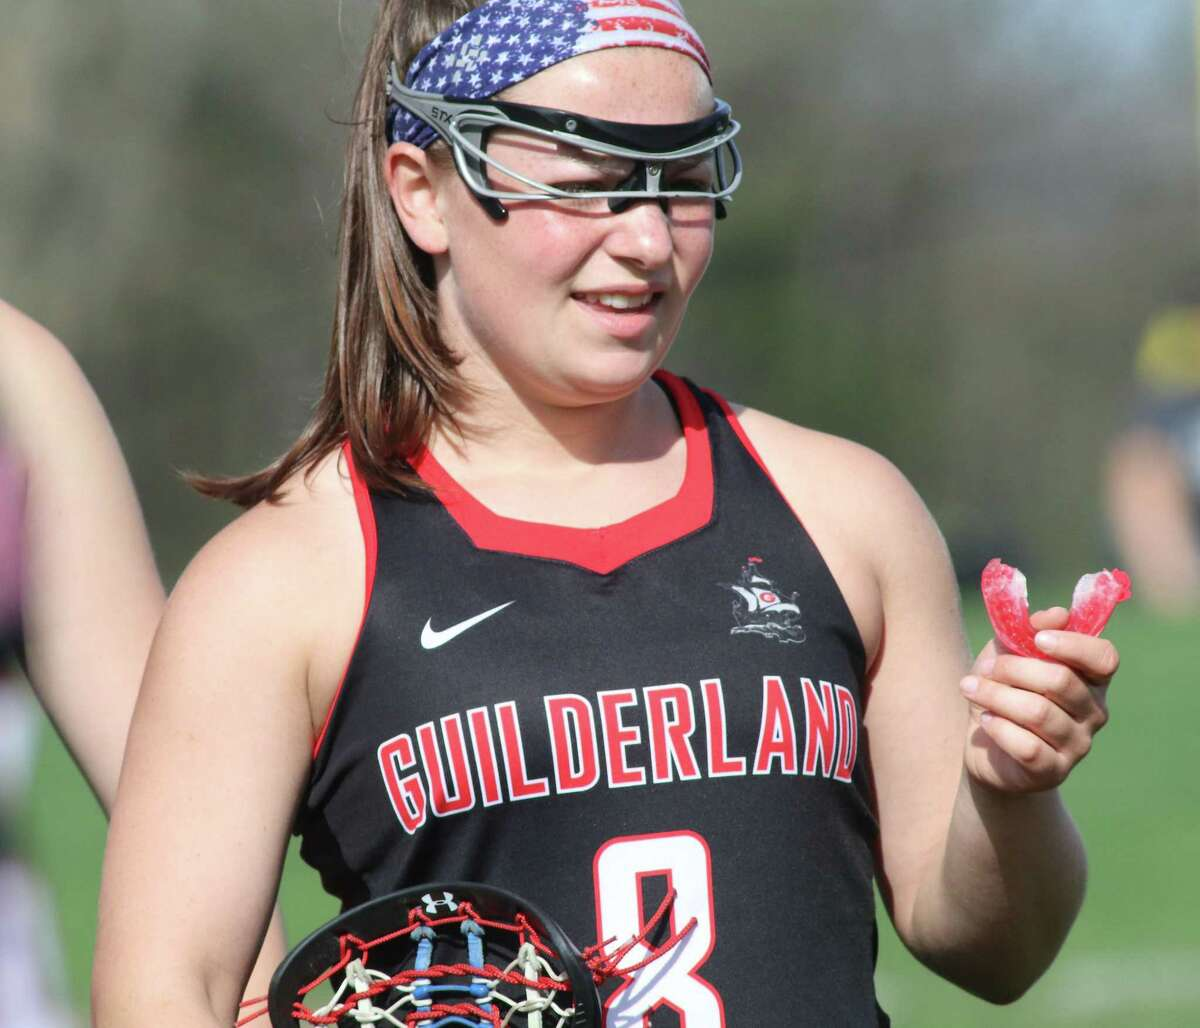 Guilderland's Hayley Kmack readies to do battle during Thursday's Suburban Council girls' lacrosse matchp at Niskayuna High School. (Ed Burke-Special to The Times Union)